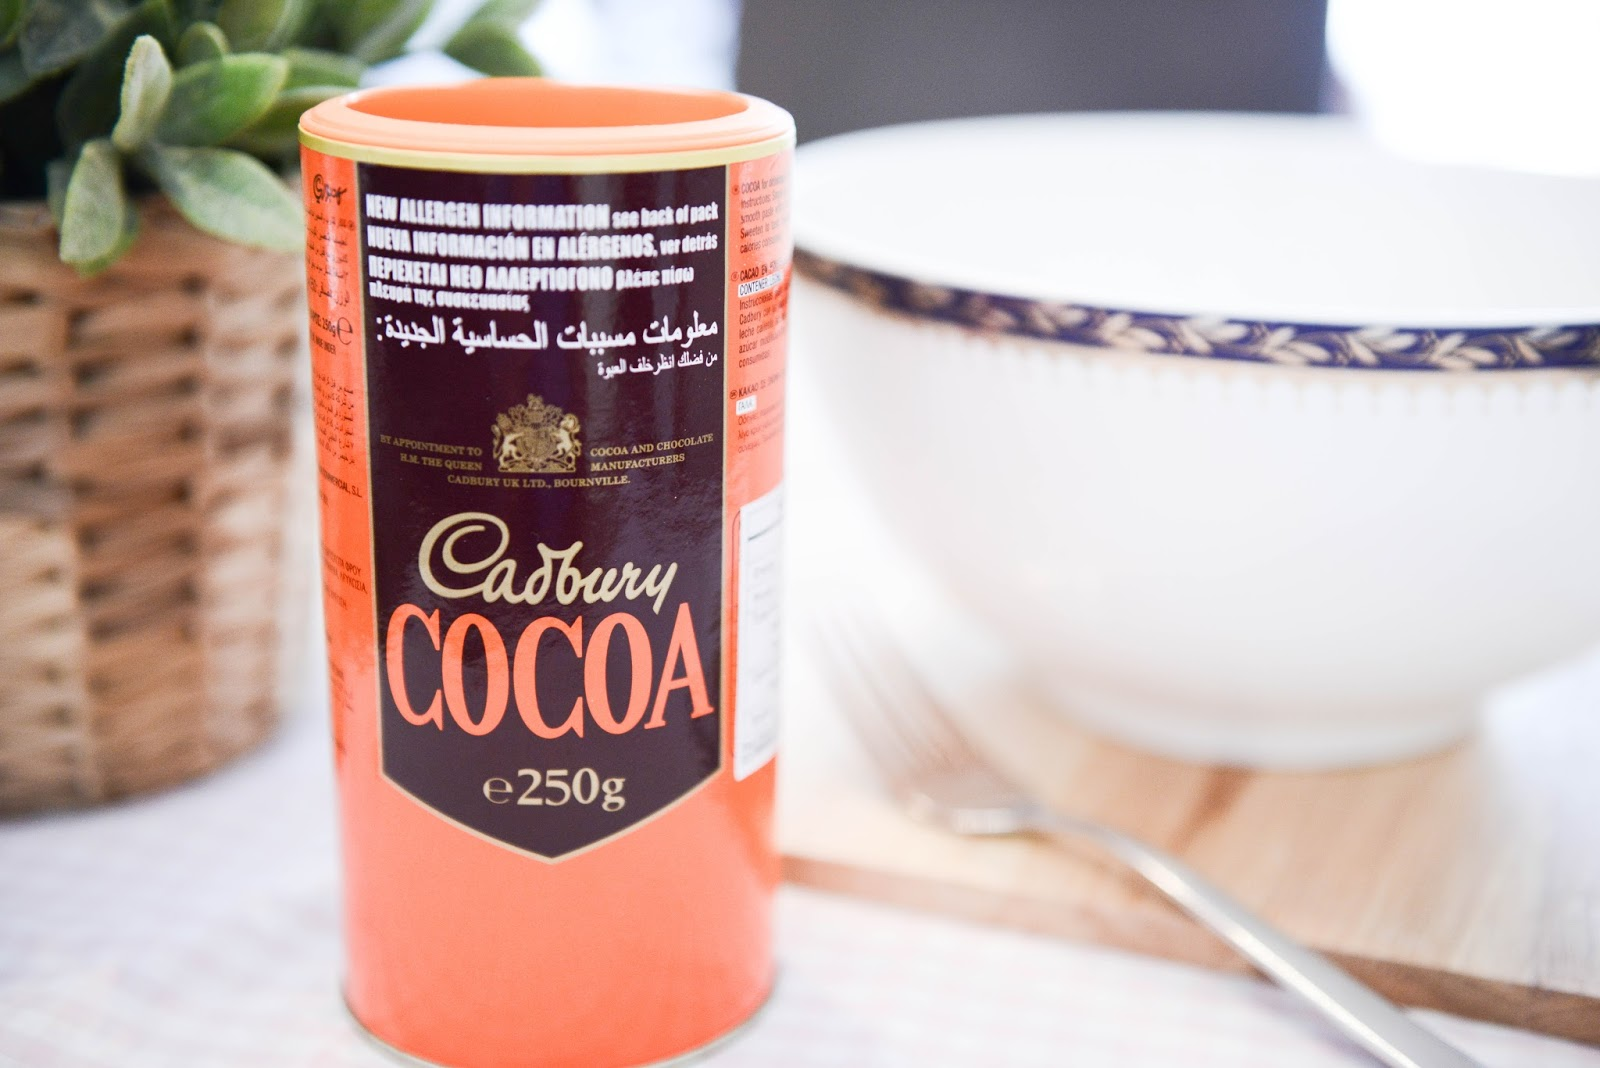 how to make chocolate from cadbury cocoa powder